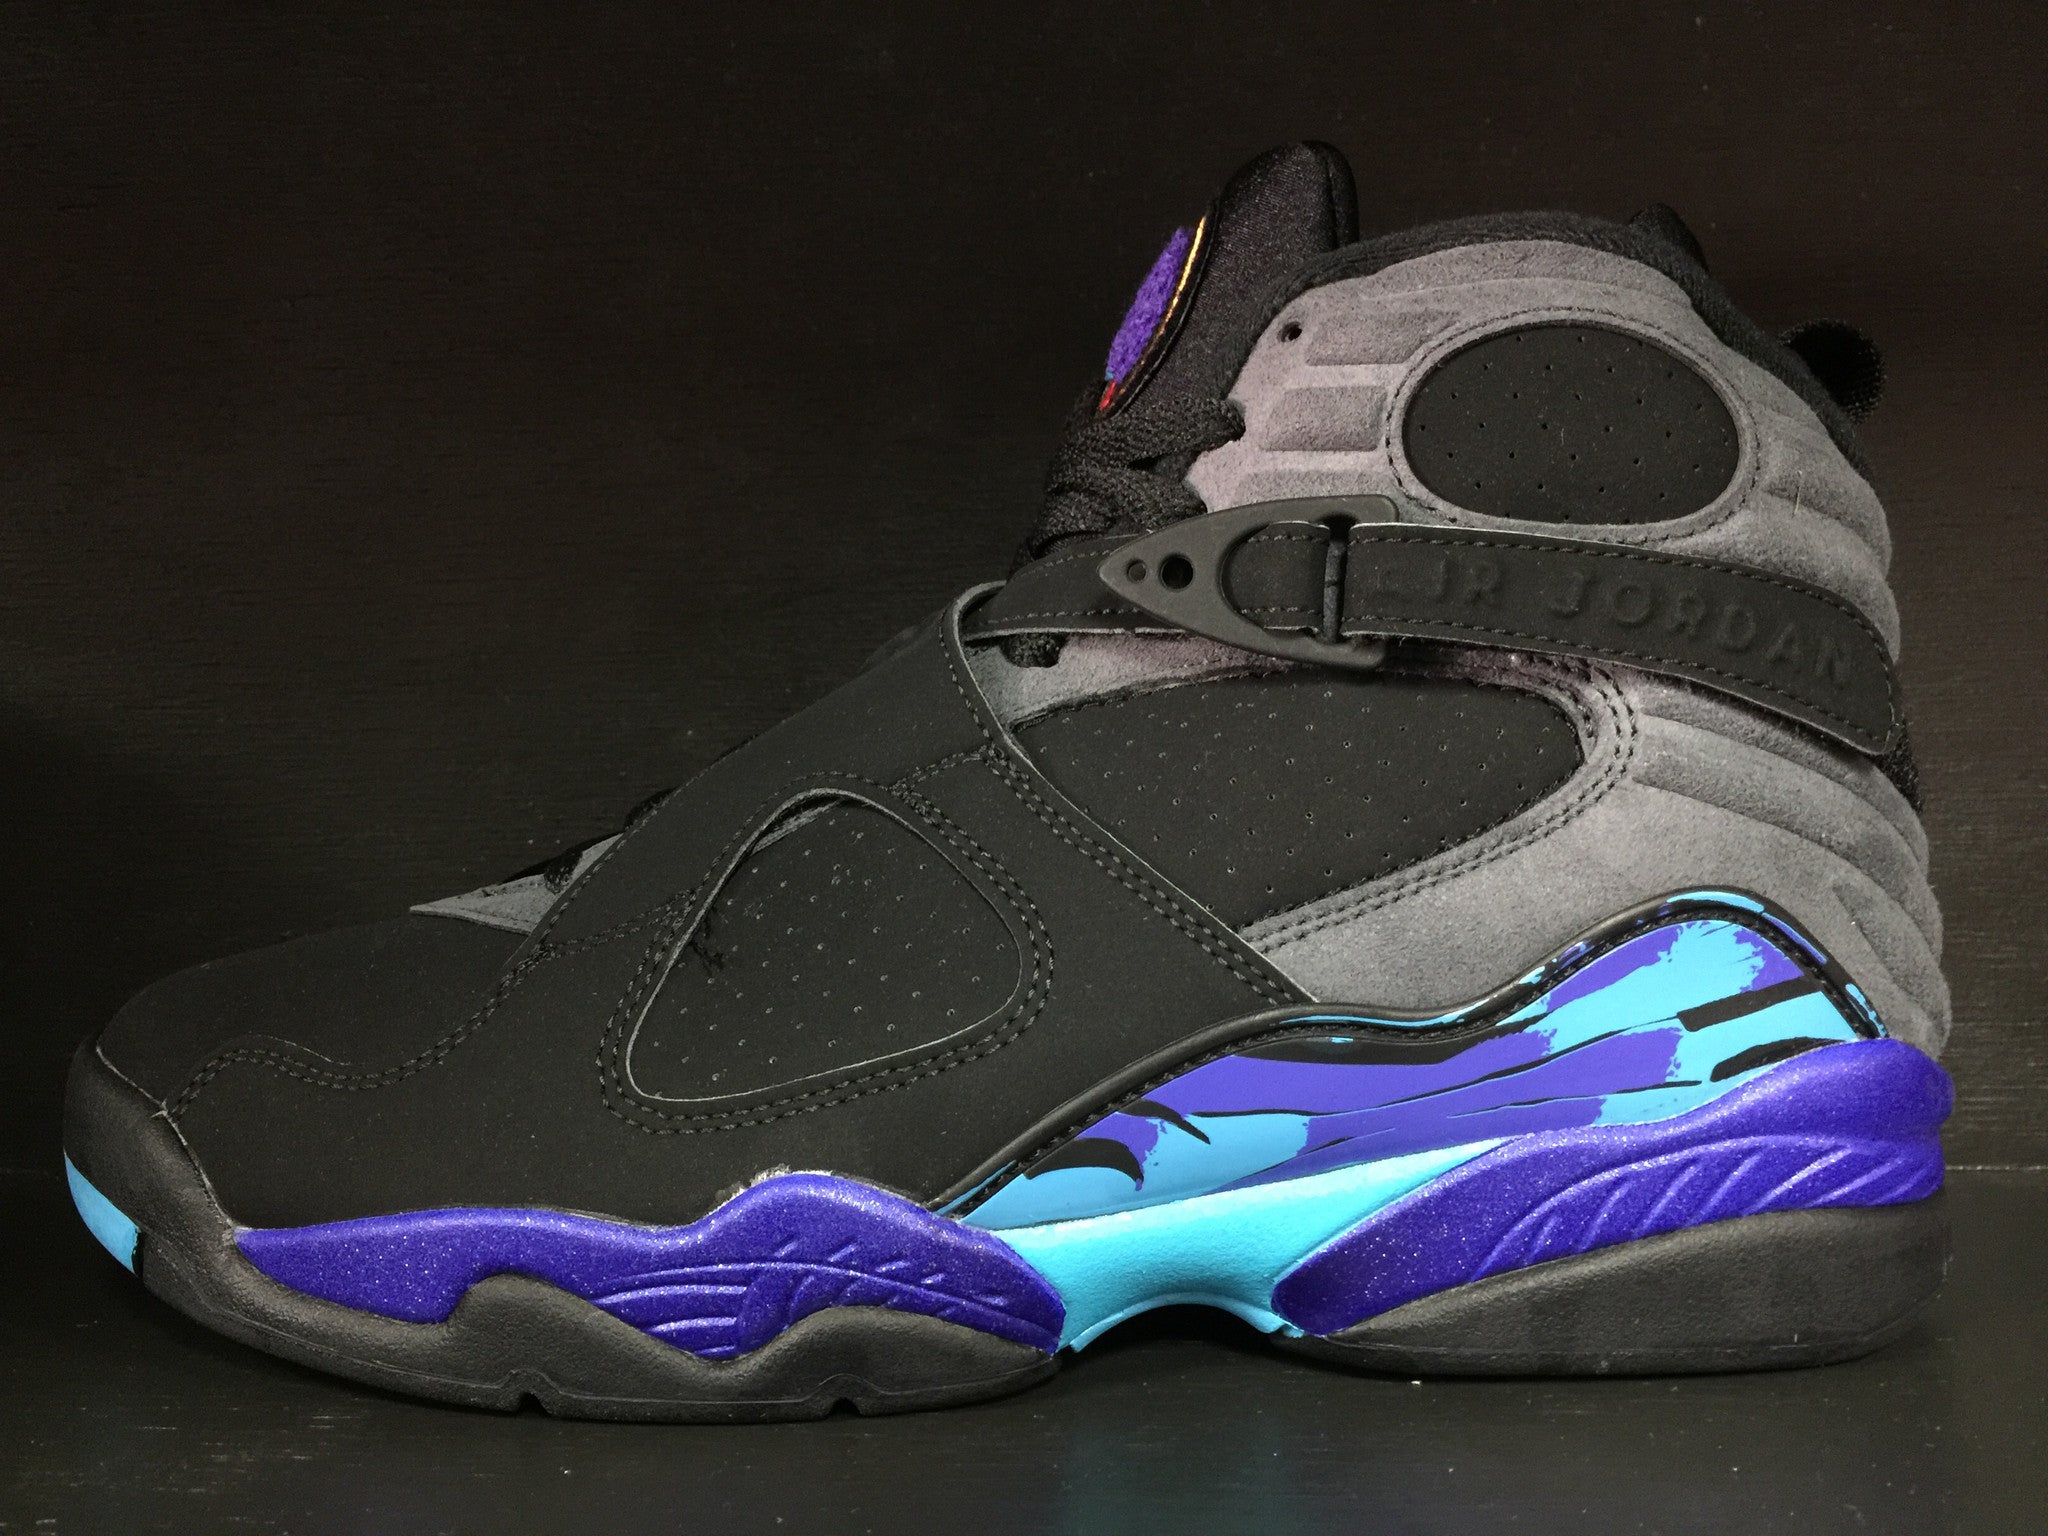 Air Jordan 8 Retro 'Aqua' Remastered